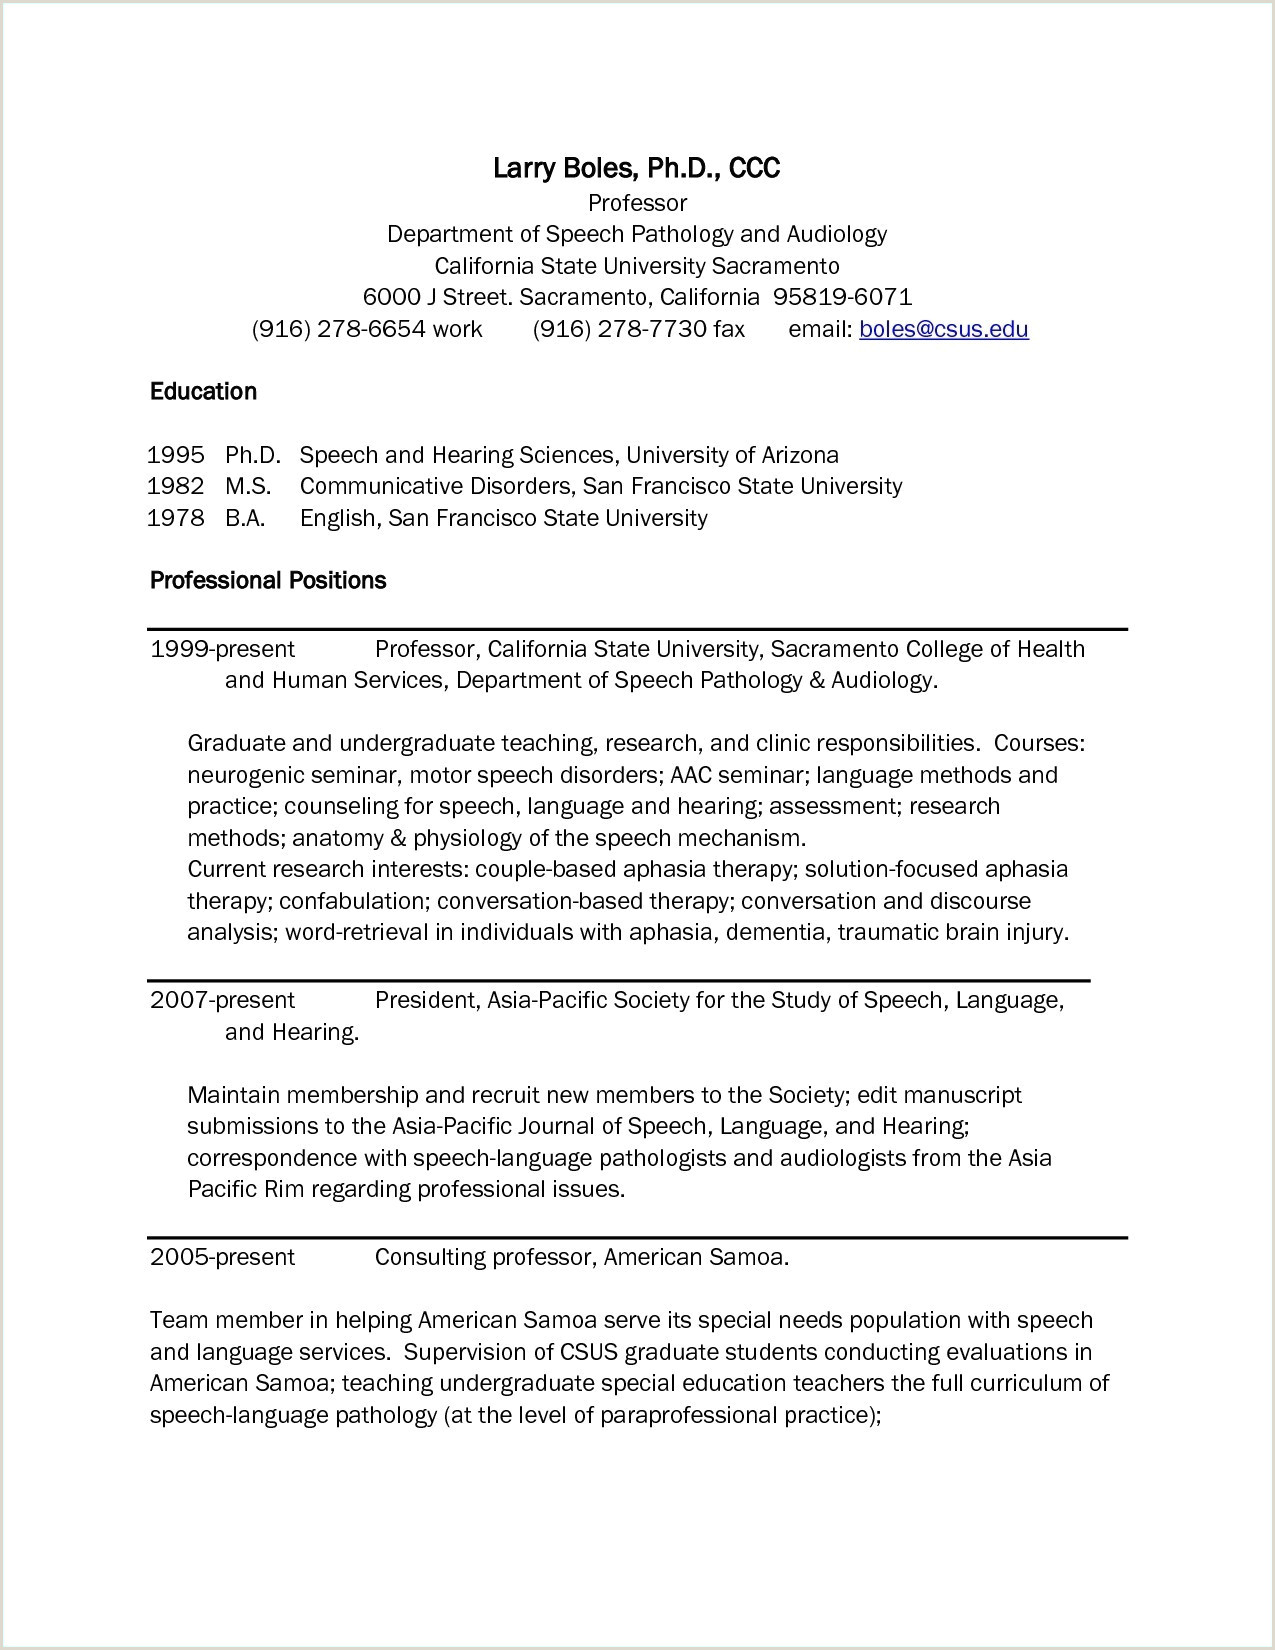 Professional Cv format for Lecturers Sample Resume for Teachers without Experience Best How to